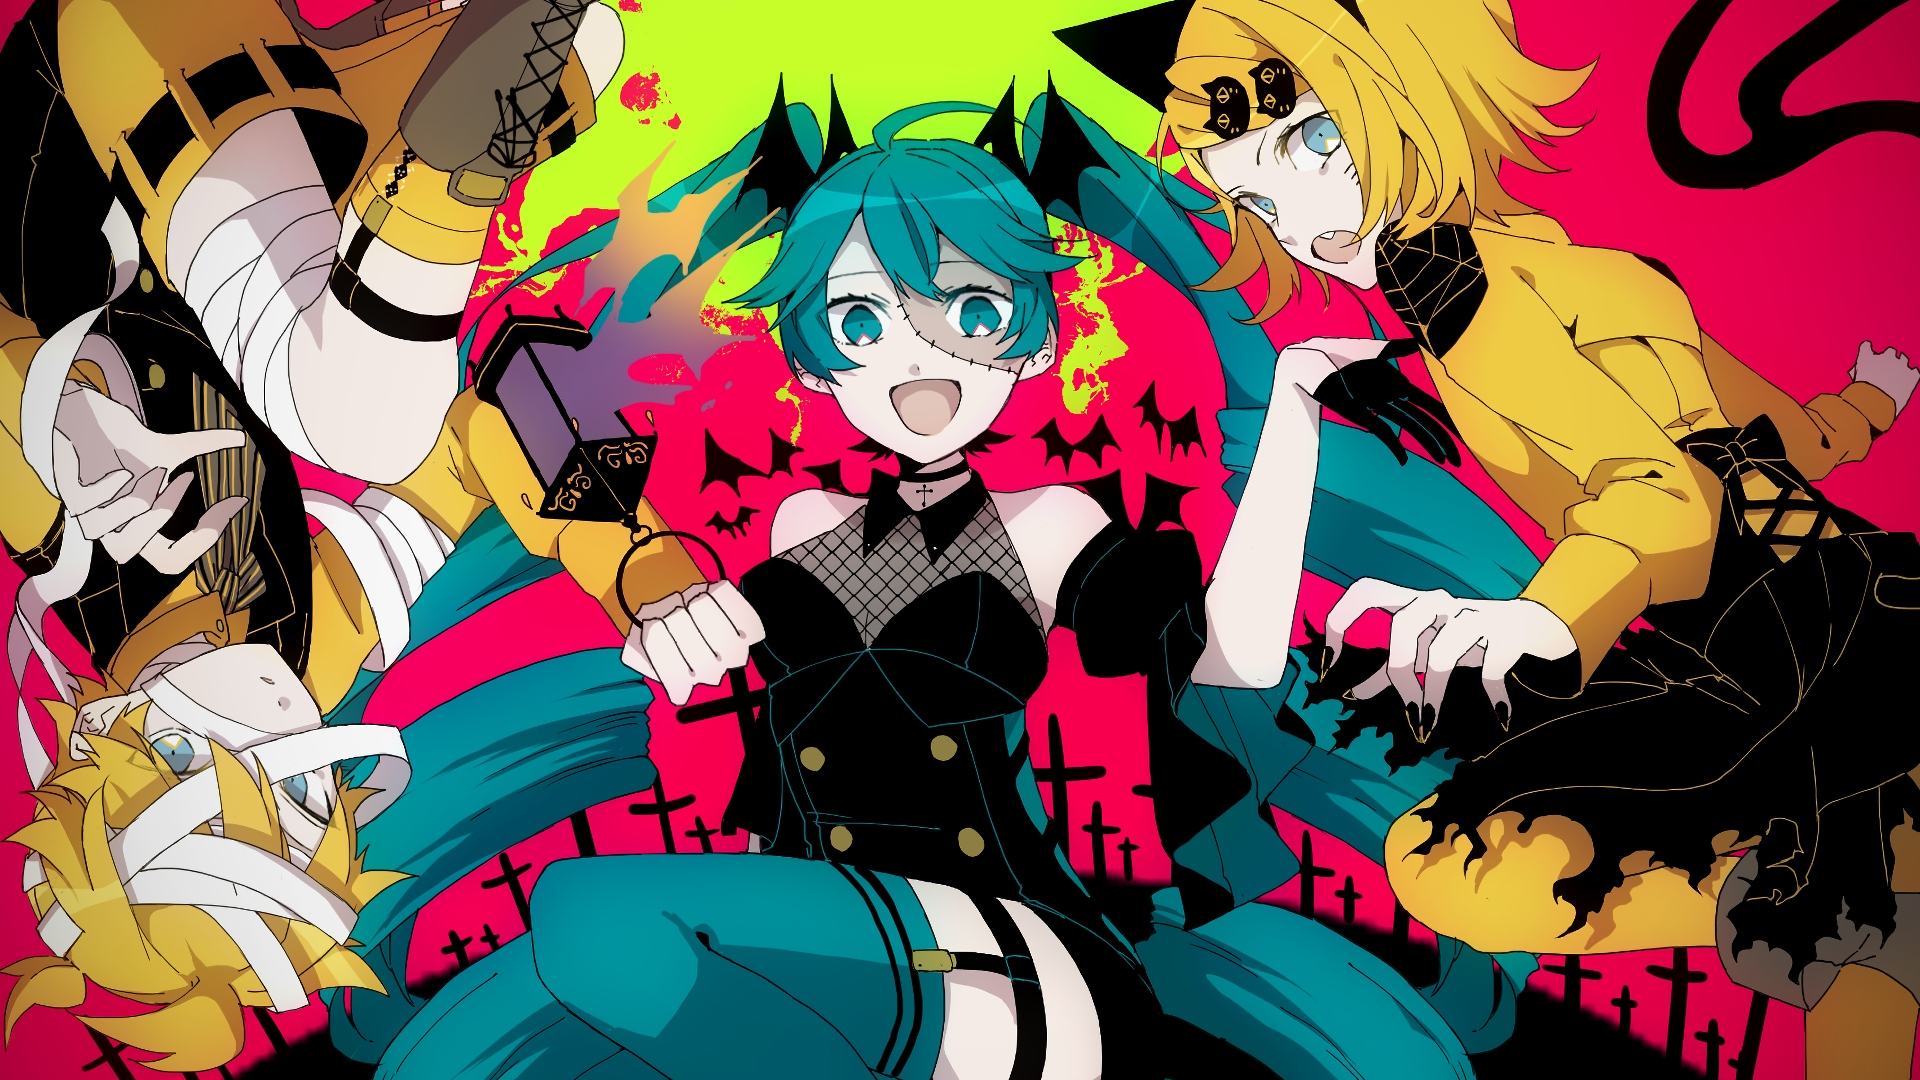 Desktop Wallpaper Hatsune Miku Kagamine Rin Len Halloween Party Anime Girls Hd Image Picture Background Acd2a1